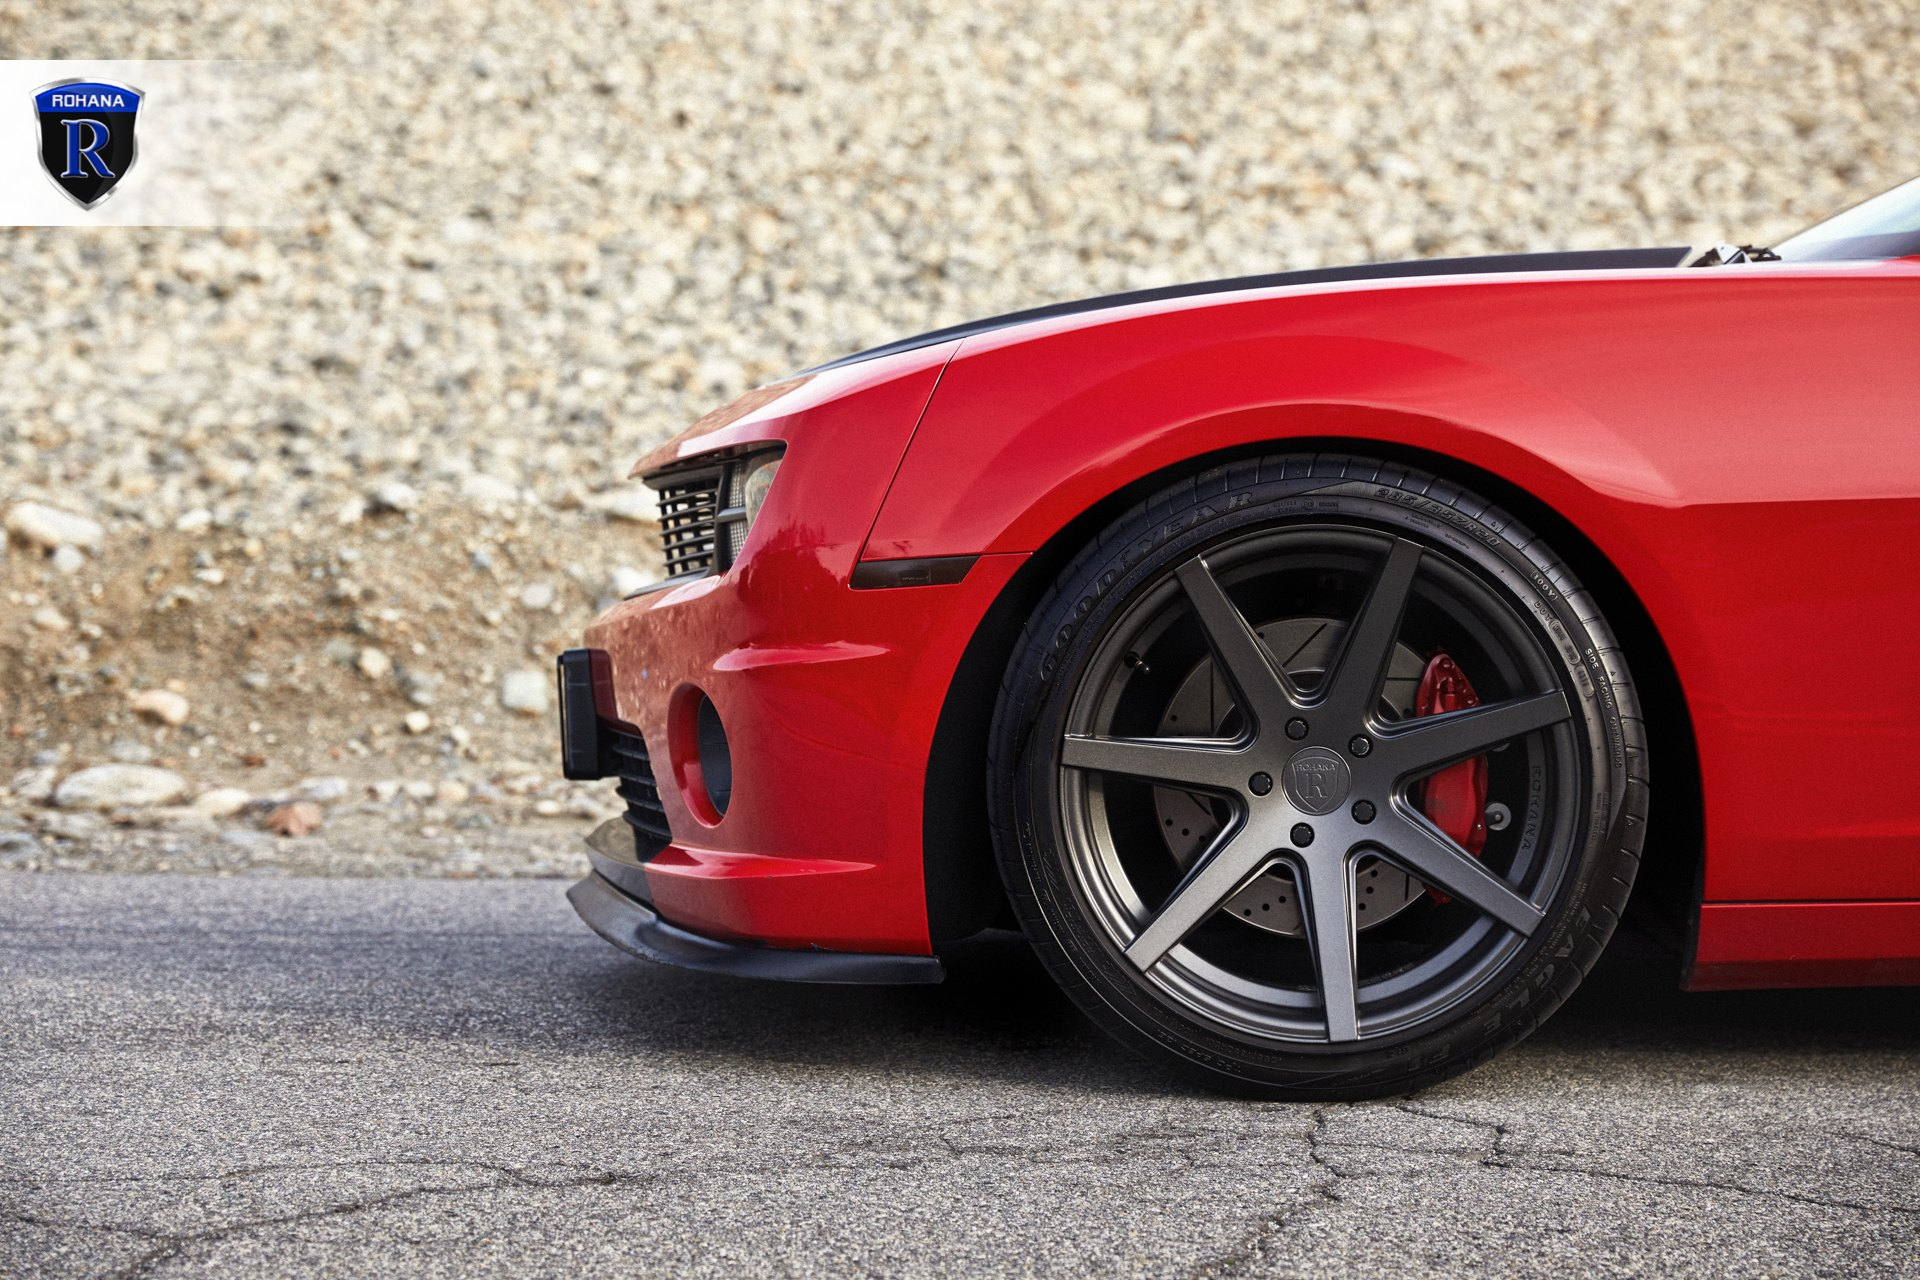 Goodyear Tires on Custom Red Chevy Camaro - Photo by Rohana Wheels